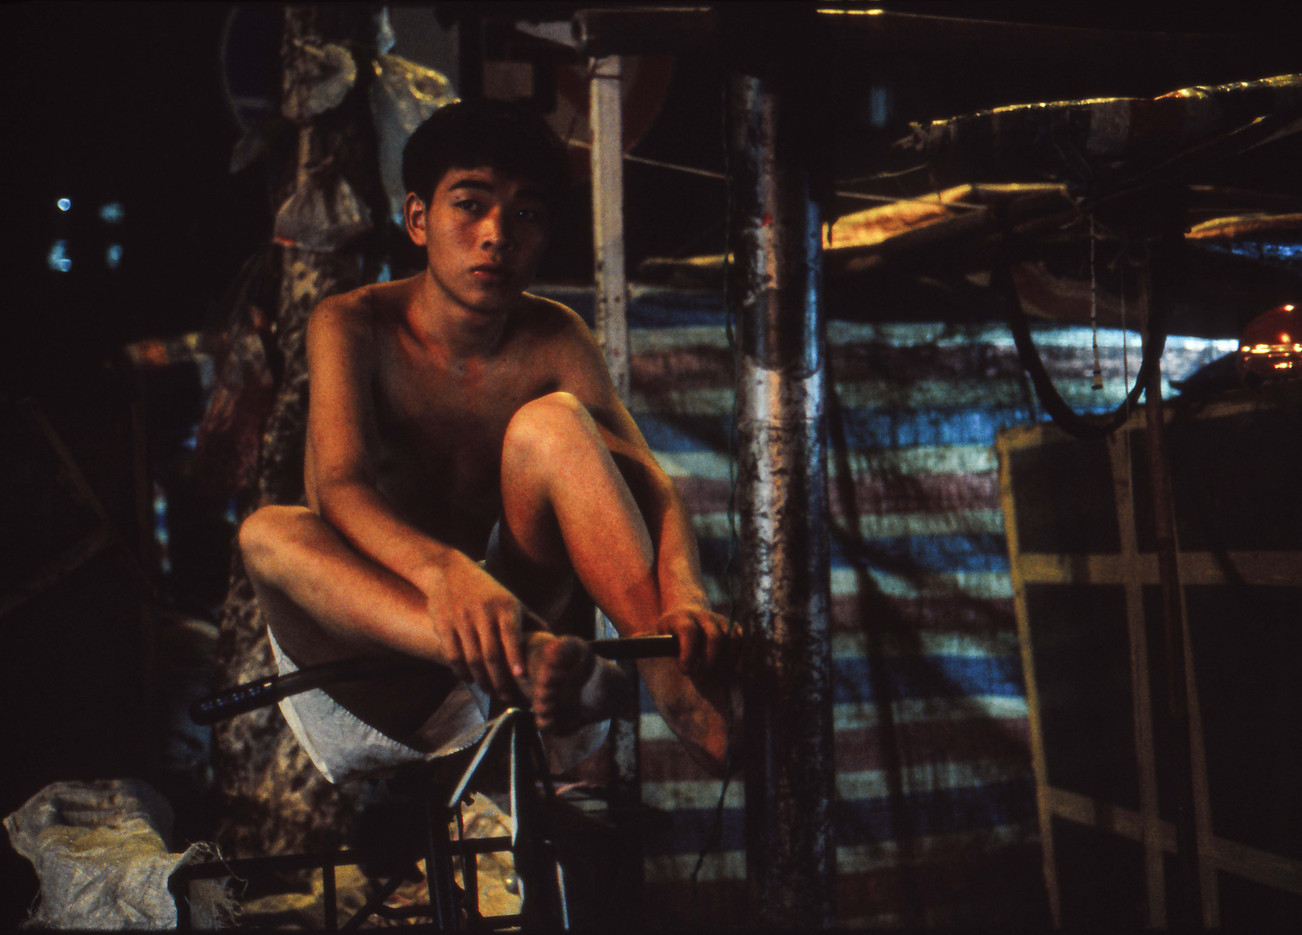 From the Terminal Station, Guangzhou 1997 #56